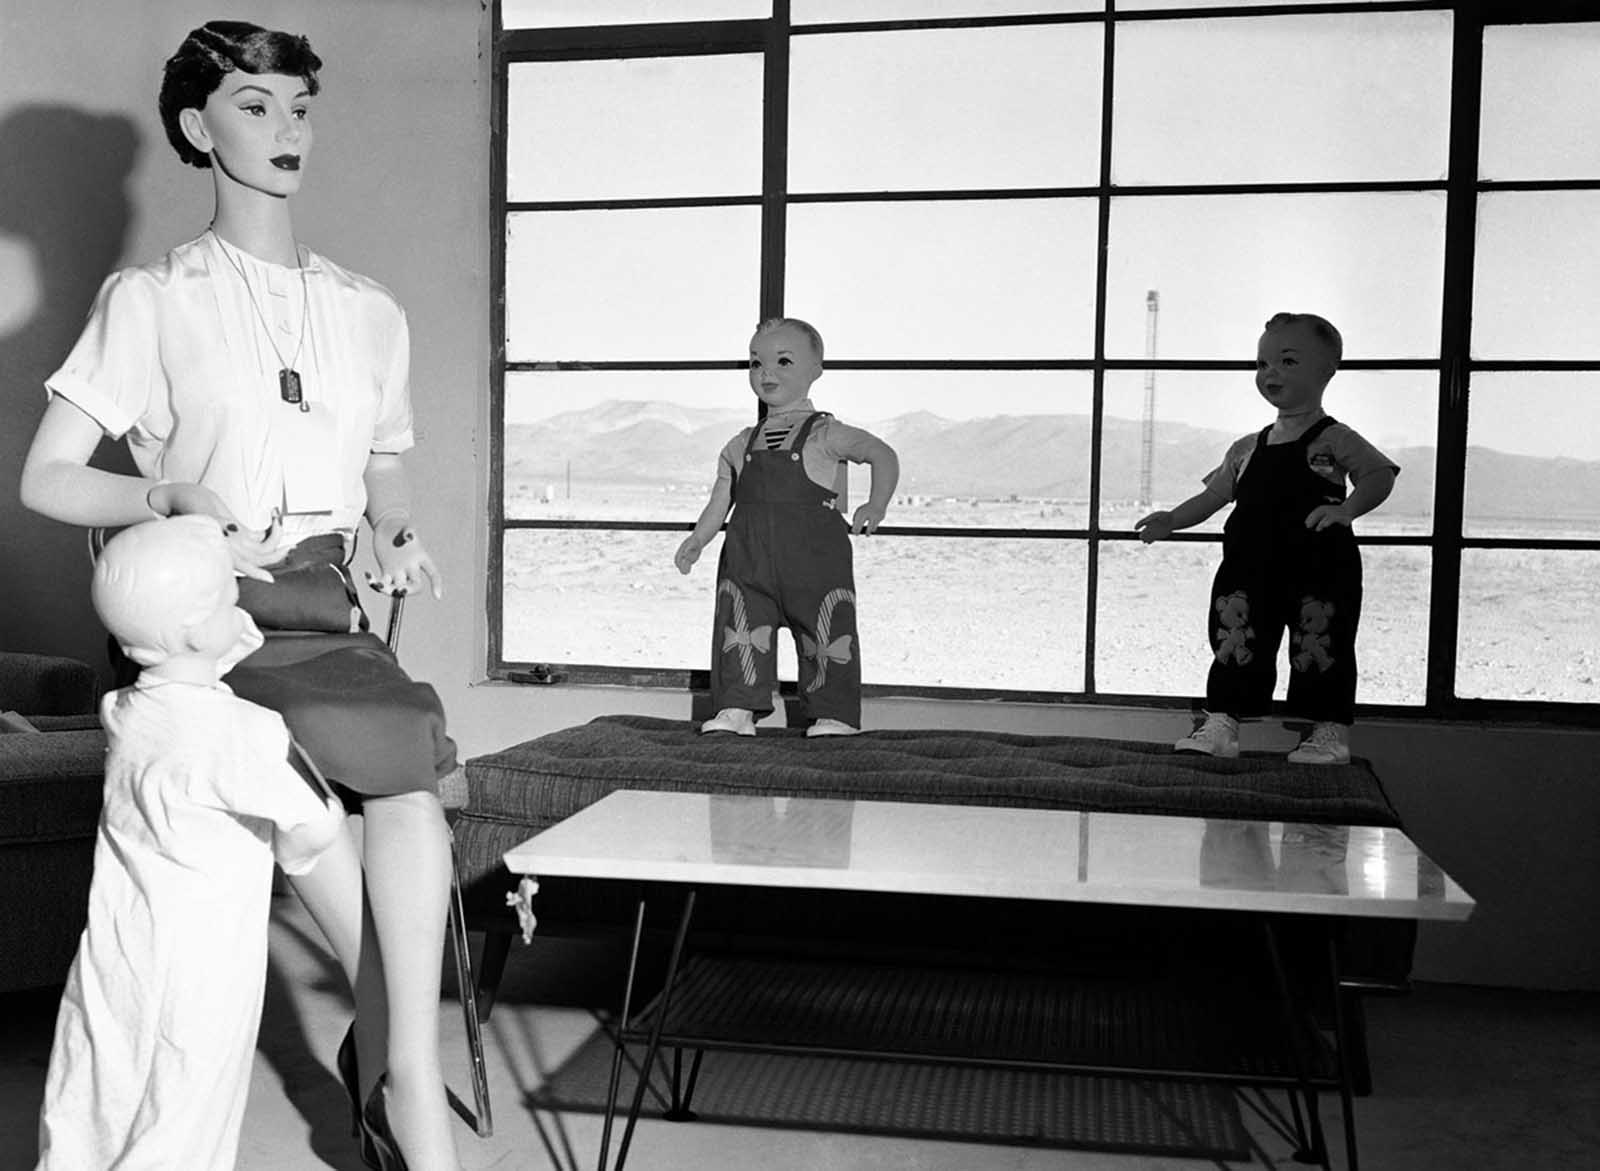 Mannequins that represent a typical American family will soon experience the fury of an atomic blast with the power of 40,000 tons of TNT at Yucca Flat, Nevada, on April, 24, 1955. The test is being conducted to determine the survival chances of an atomic attack. Visible through the window is the tower 4,700 feet away on which the detonation will occur.